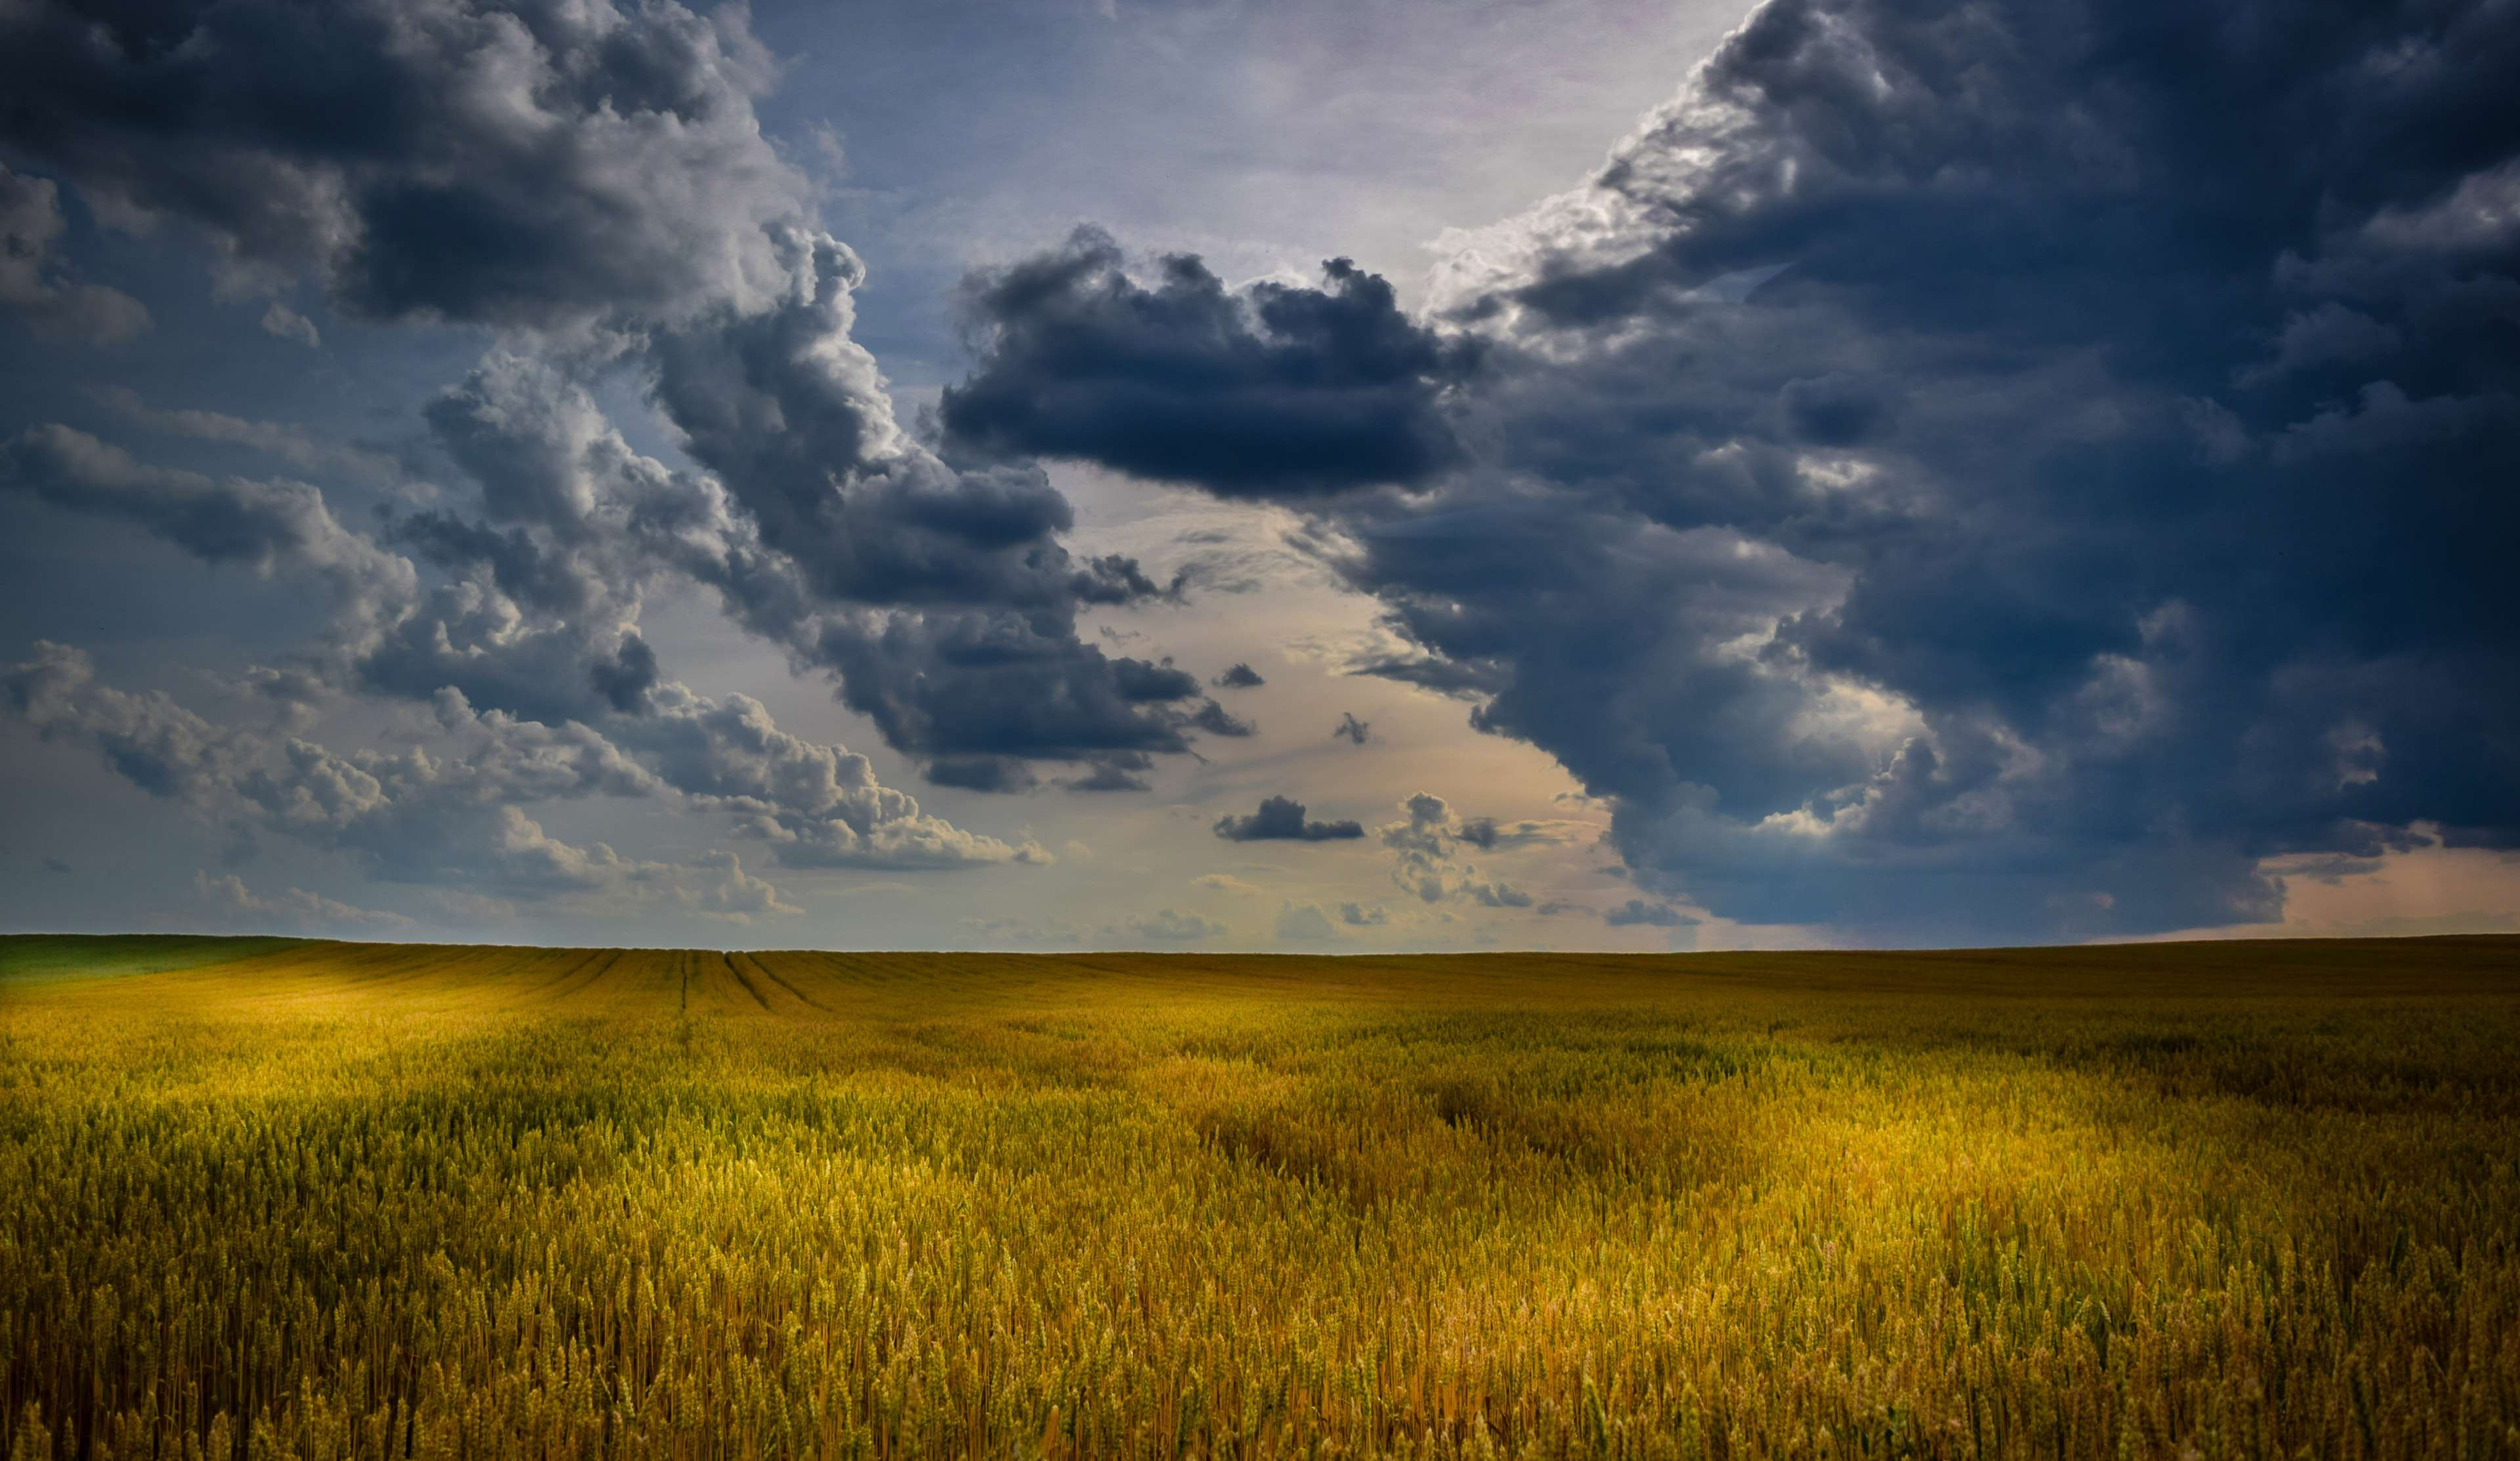 3840x2227-3072793-agriculture_cloudscape_cloudy-skies_countryside_crop_cropland_farm_farming_field_harvest_landscape_light-and-shadow_nature_outdoors_pasture_plains_rural_sky_sunlight_sunset_wheat_yellow